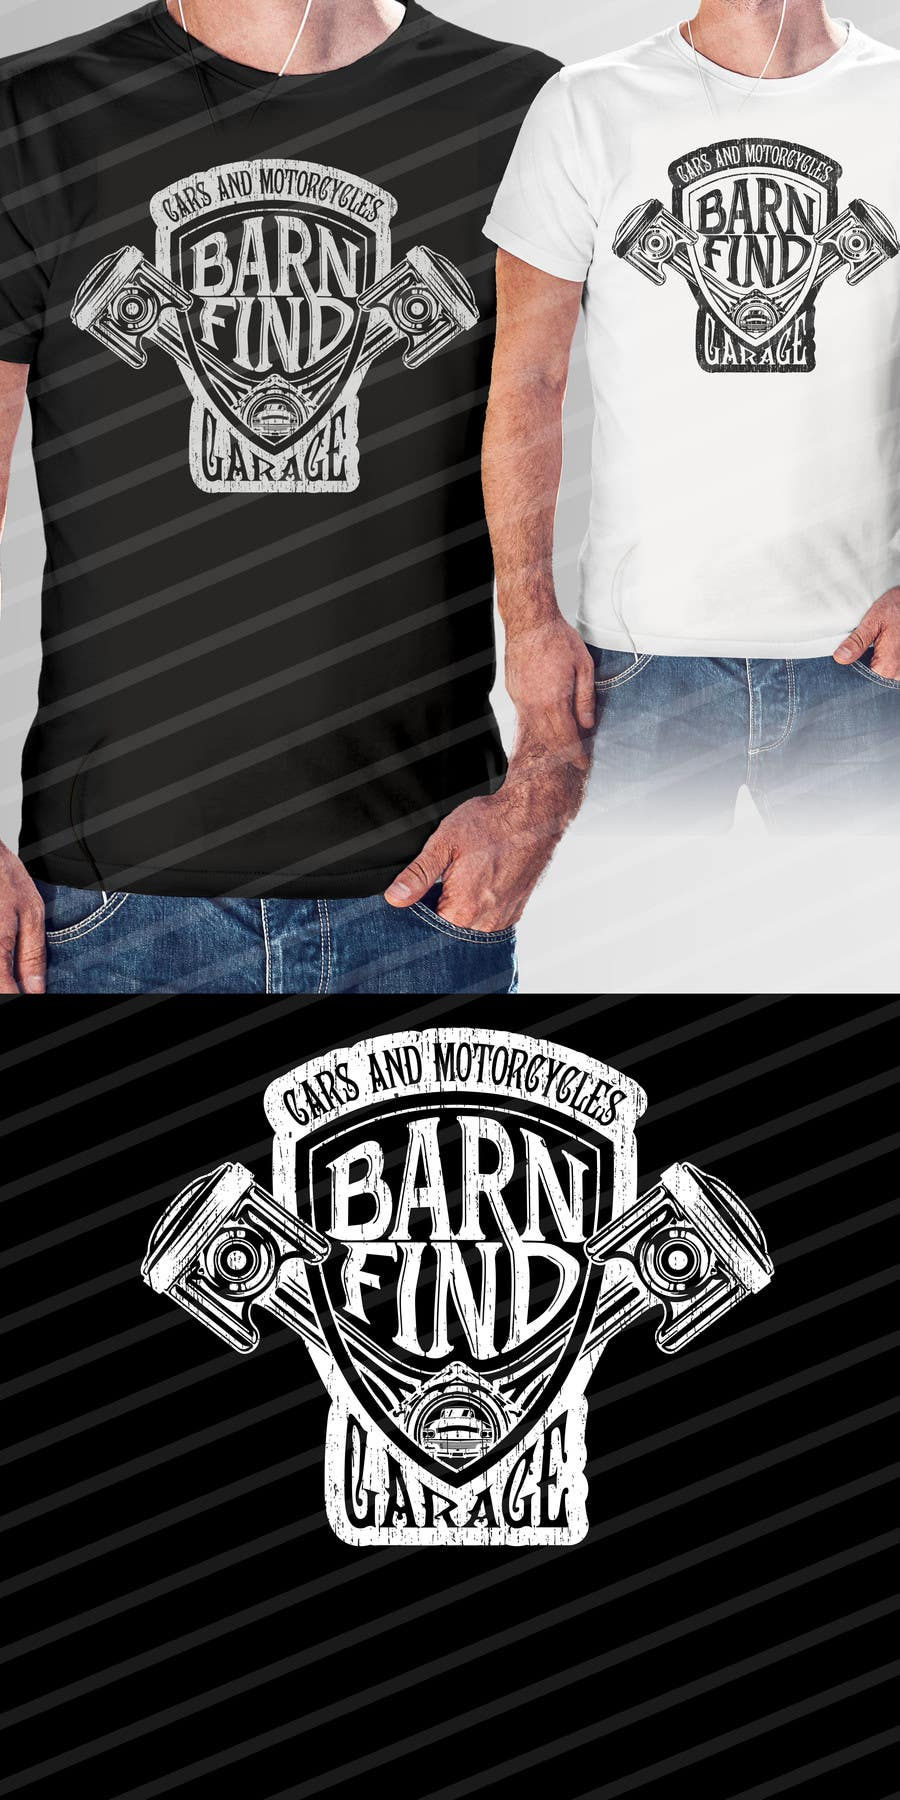 Proposition n°9 du concours t-shirt design for classic car and motorcycle restoration brand